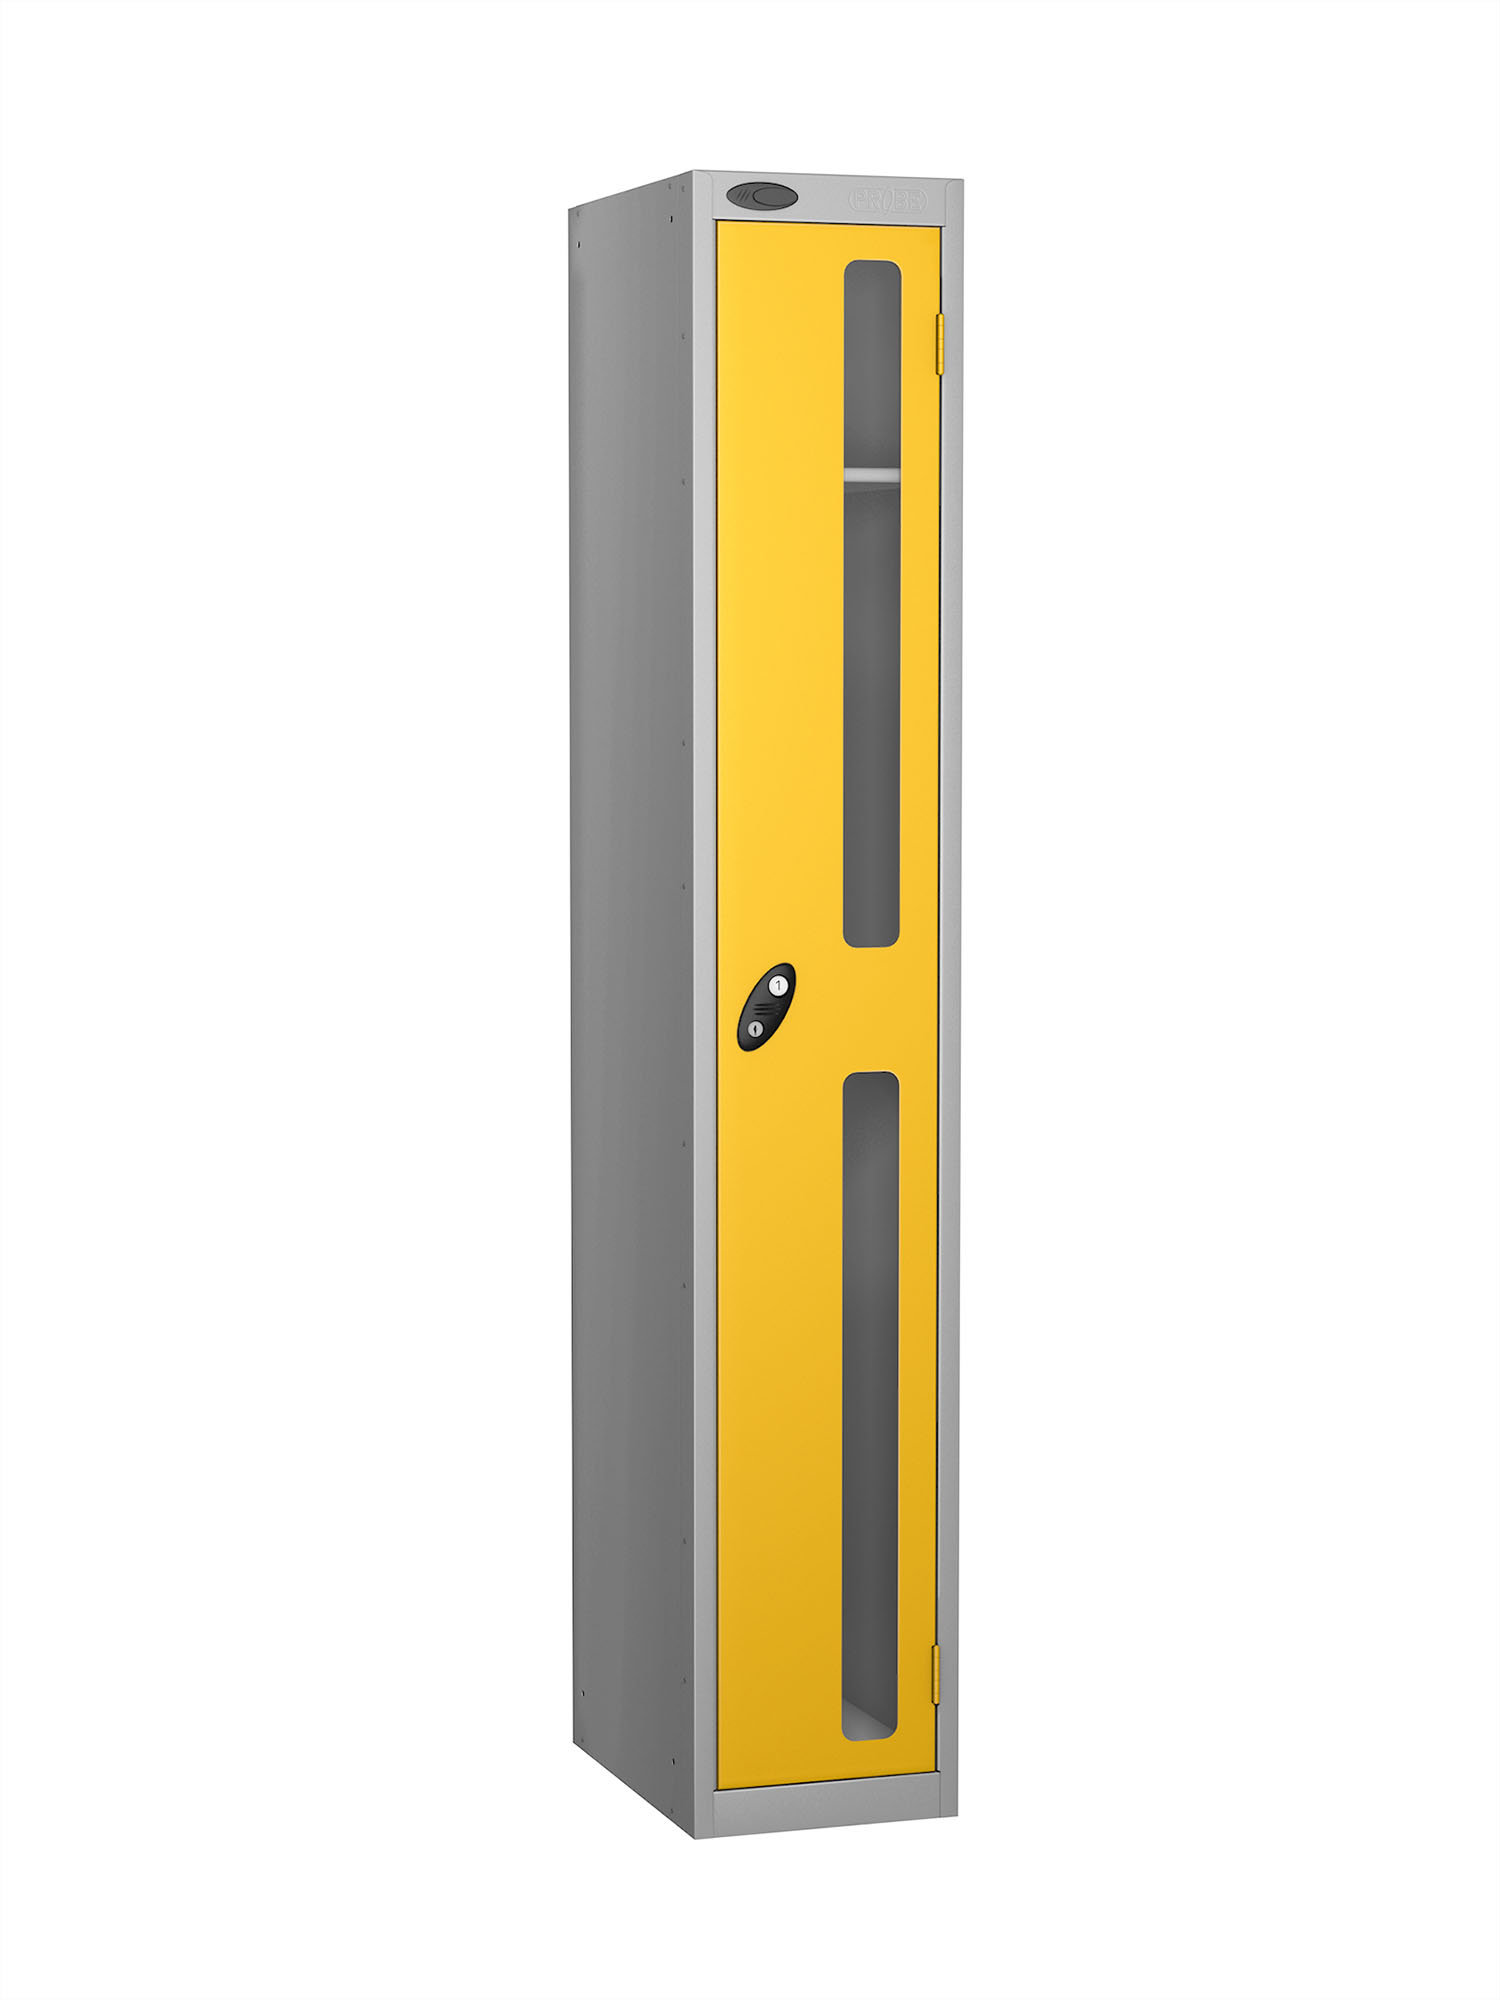 Probe 1 door vision panel anti-stock theft locker yellow